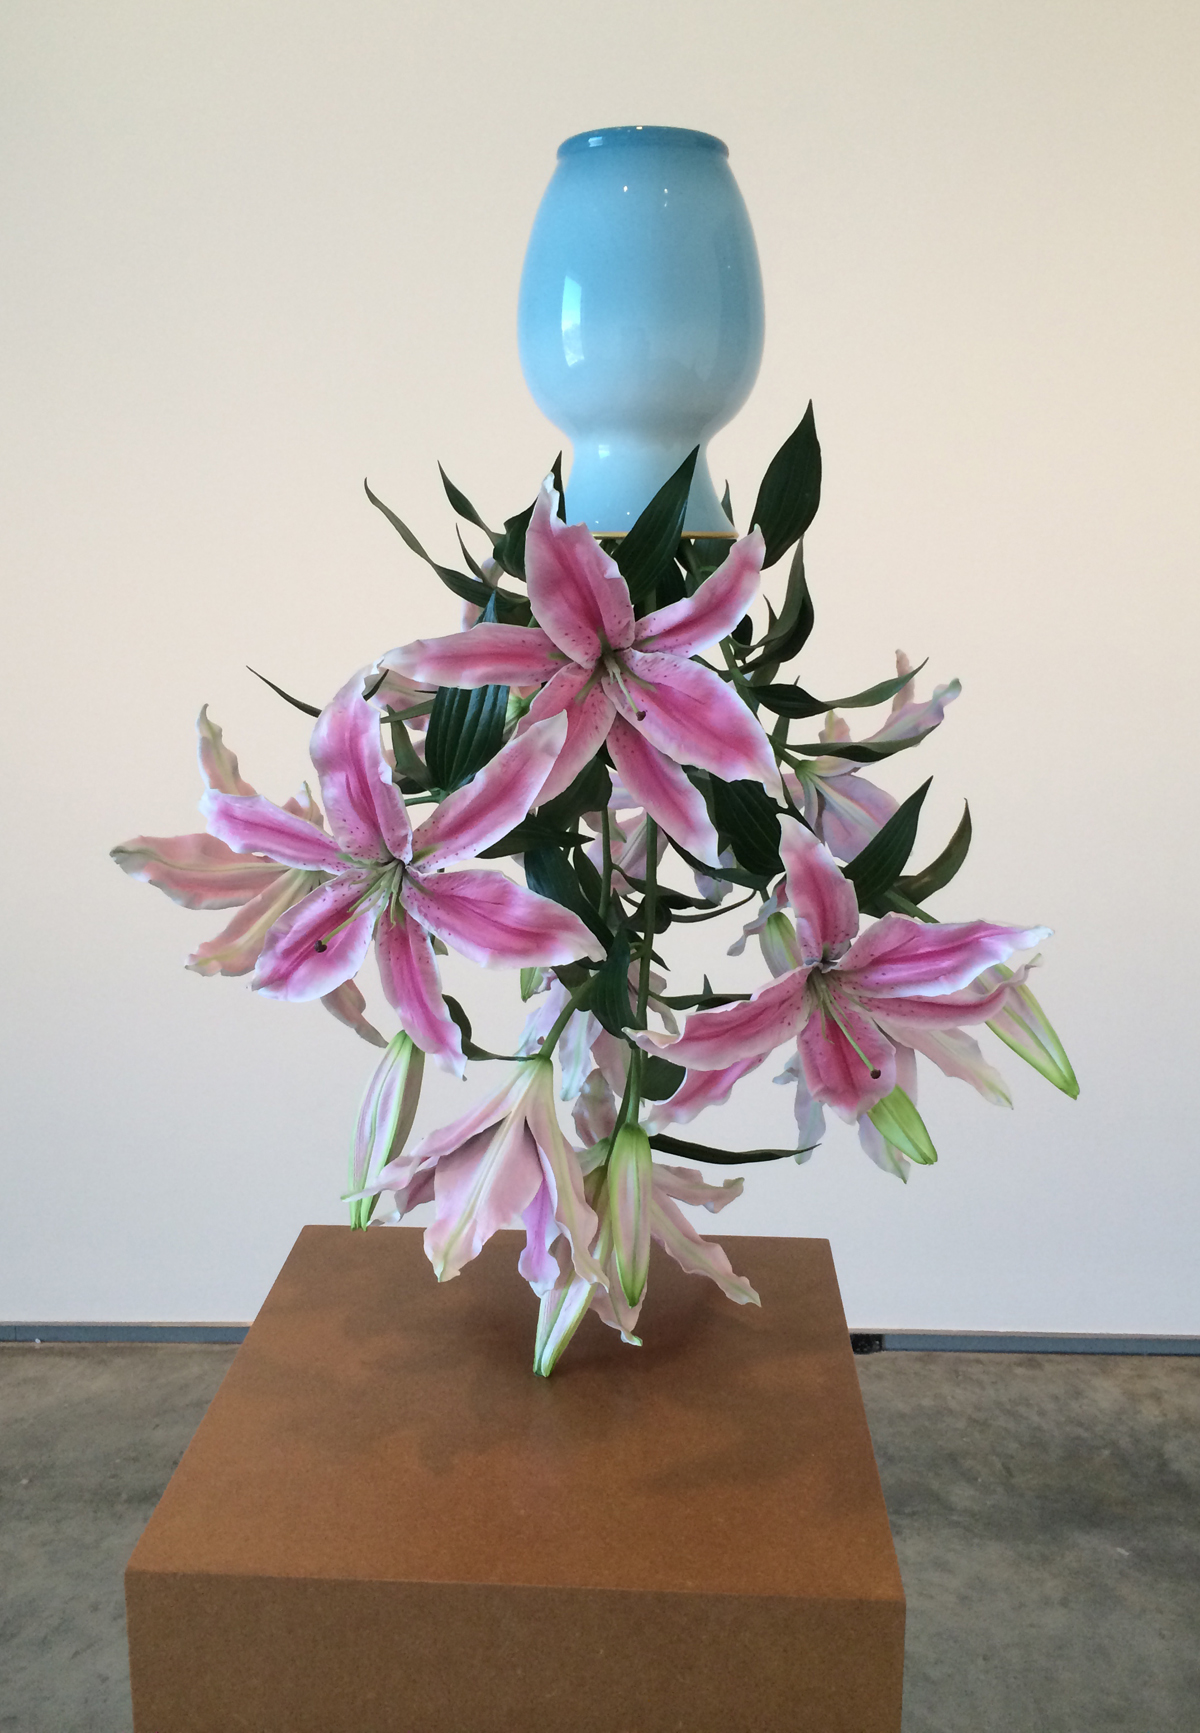 Tony Matelli, Arrangement, 2012. Painted bronze, 33 x 16 x 22 in, Davis Museum, Wellesley